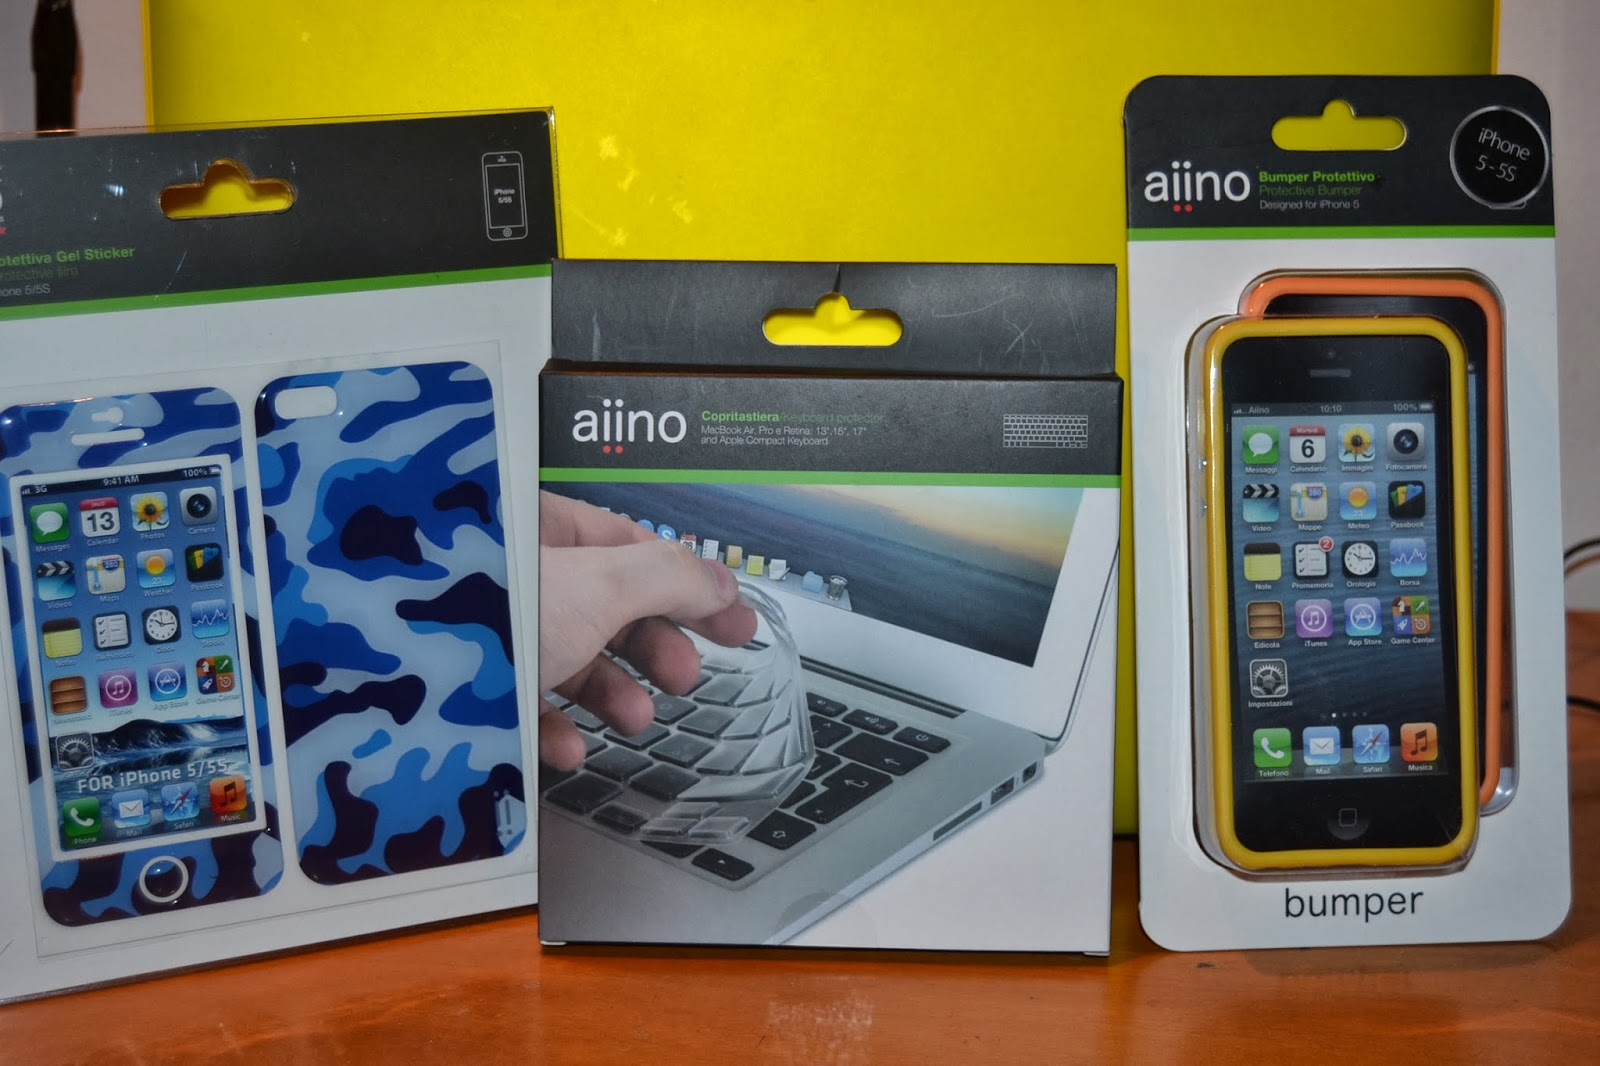 http://www.syriouslyinfashion.com/2014/02/aiino-bumper-gel-sticker-cover-keyboard.html